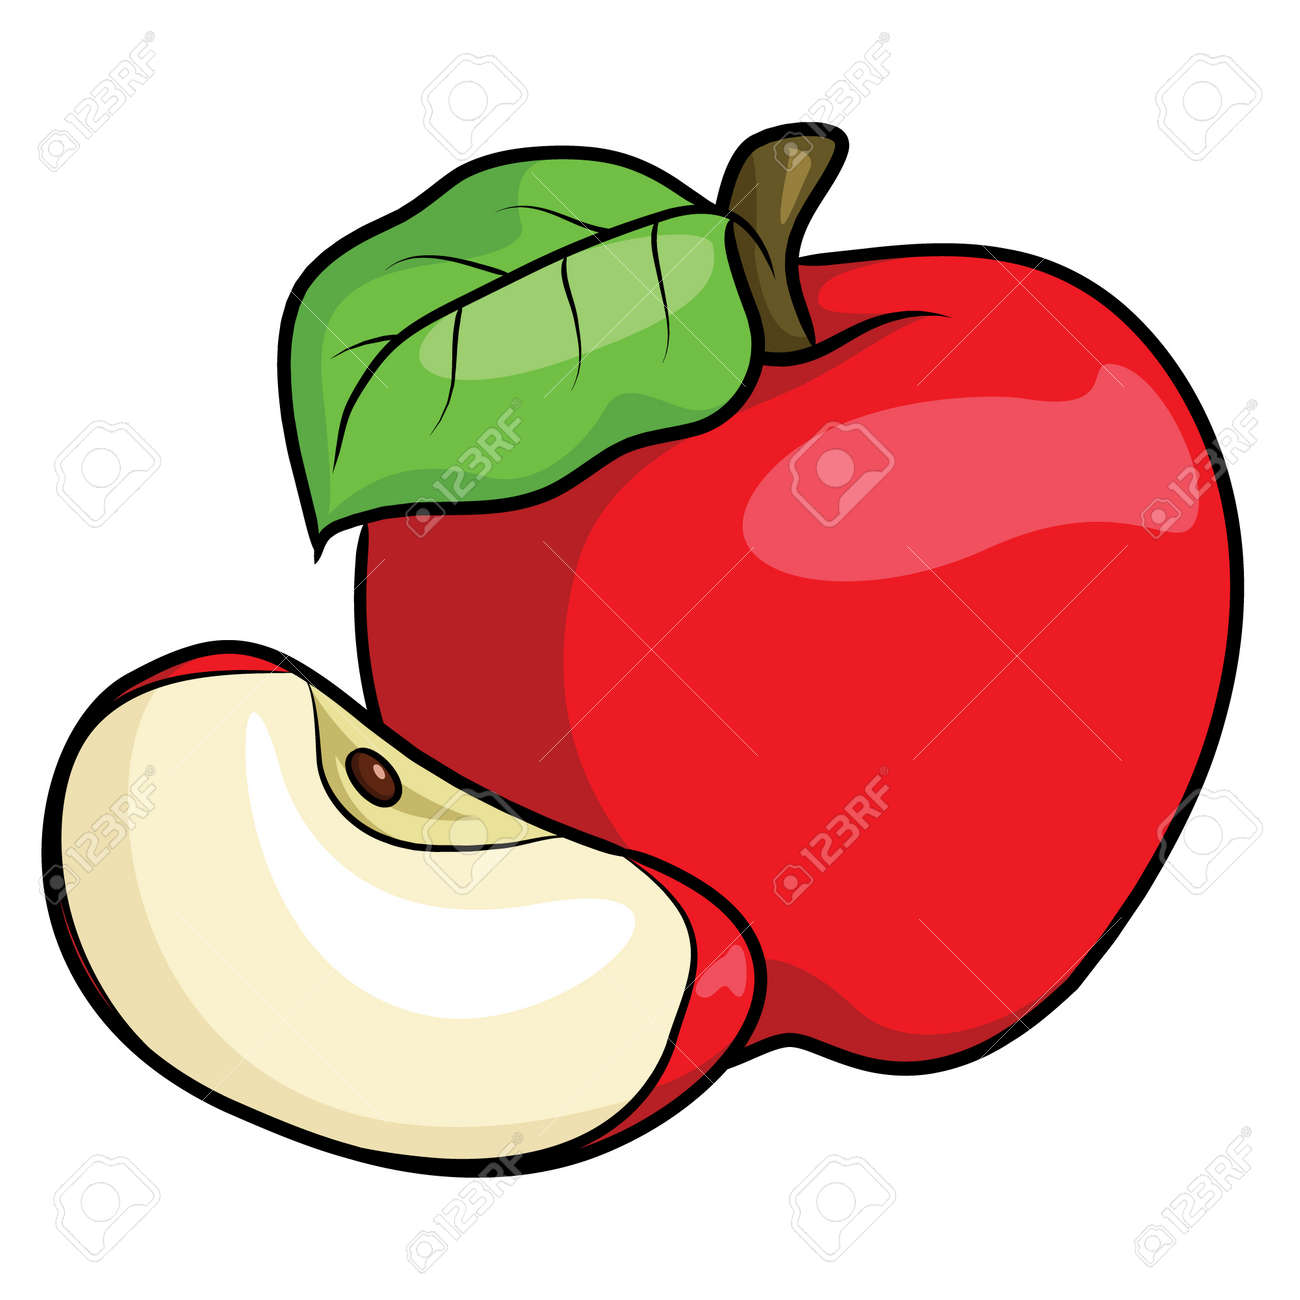 Illustration Of Cute Cartoon Apple Royalty Free Cliparts Vectors And Stock Illustration Image 87000550